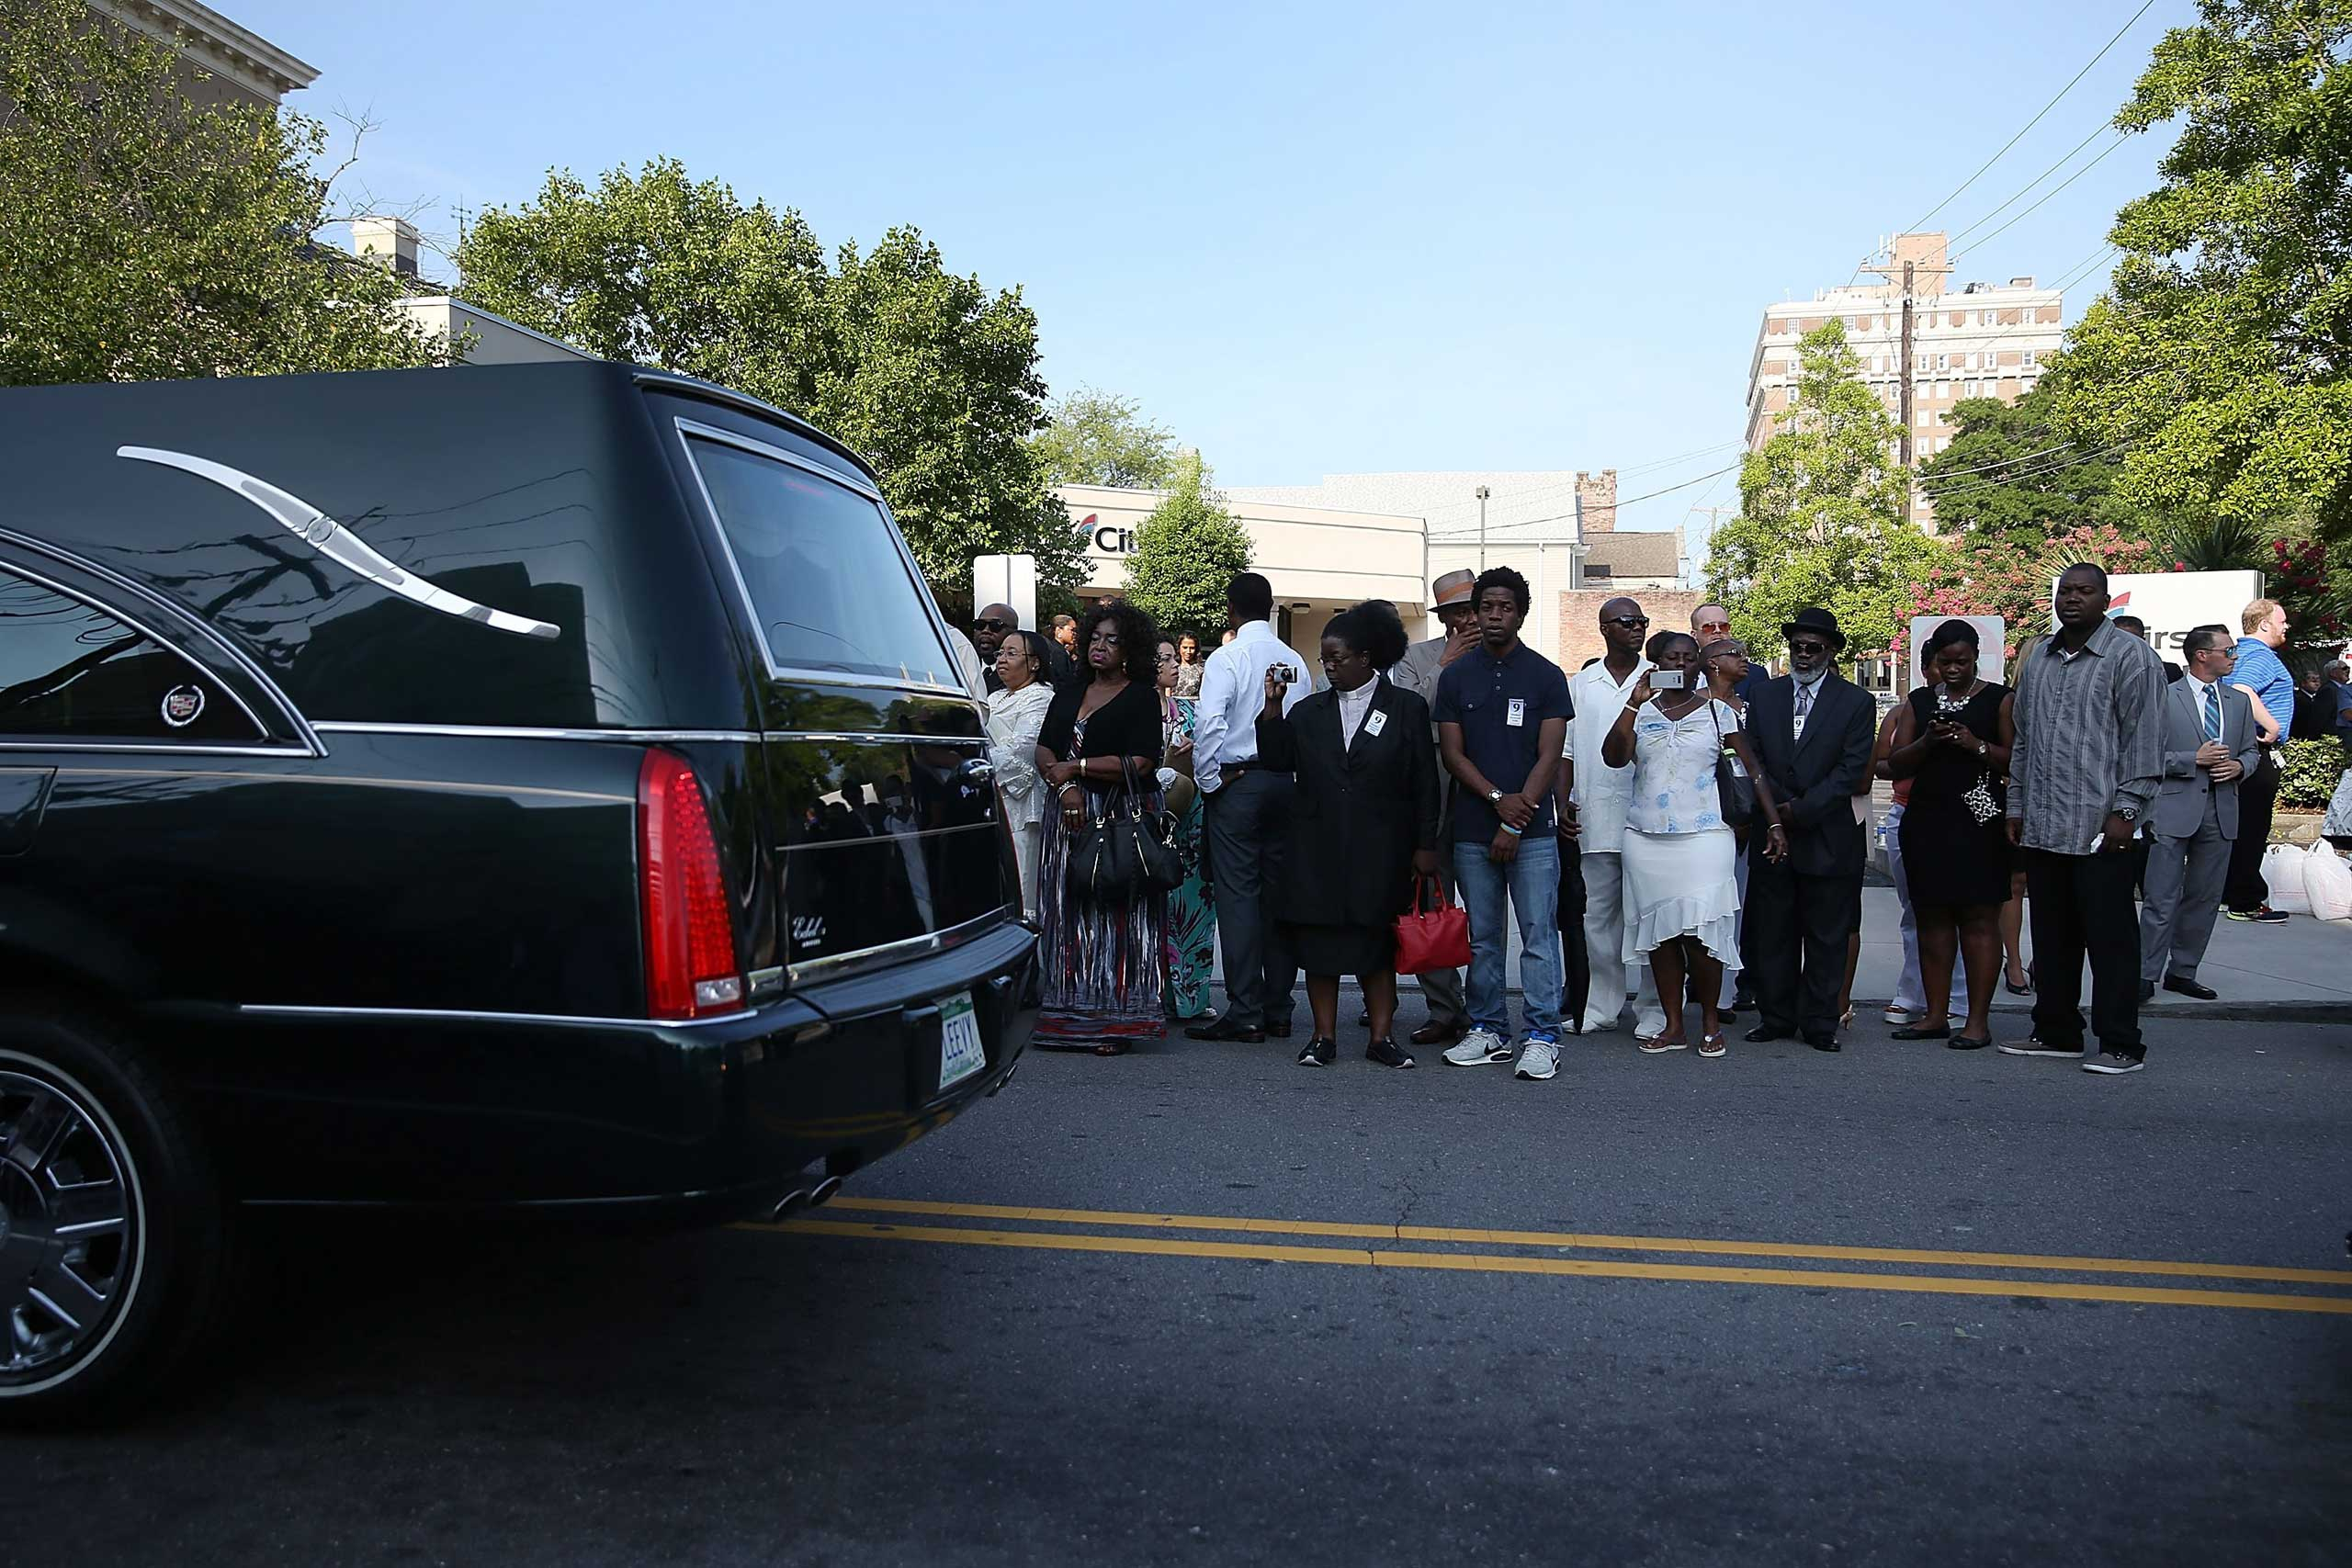 People watch as the hearse carrying Rev. Clementa Pinckney passes by as they line up to enter the College  of Charleston TD Arena where his funeral service will be held in Charleston, S.C. on June 26, 2015.